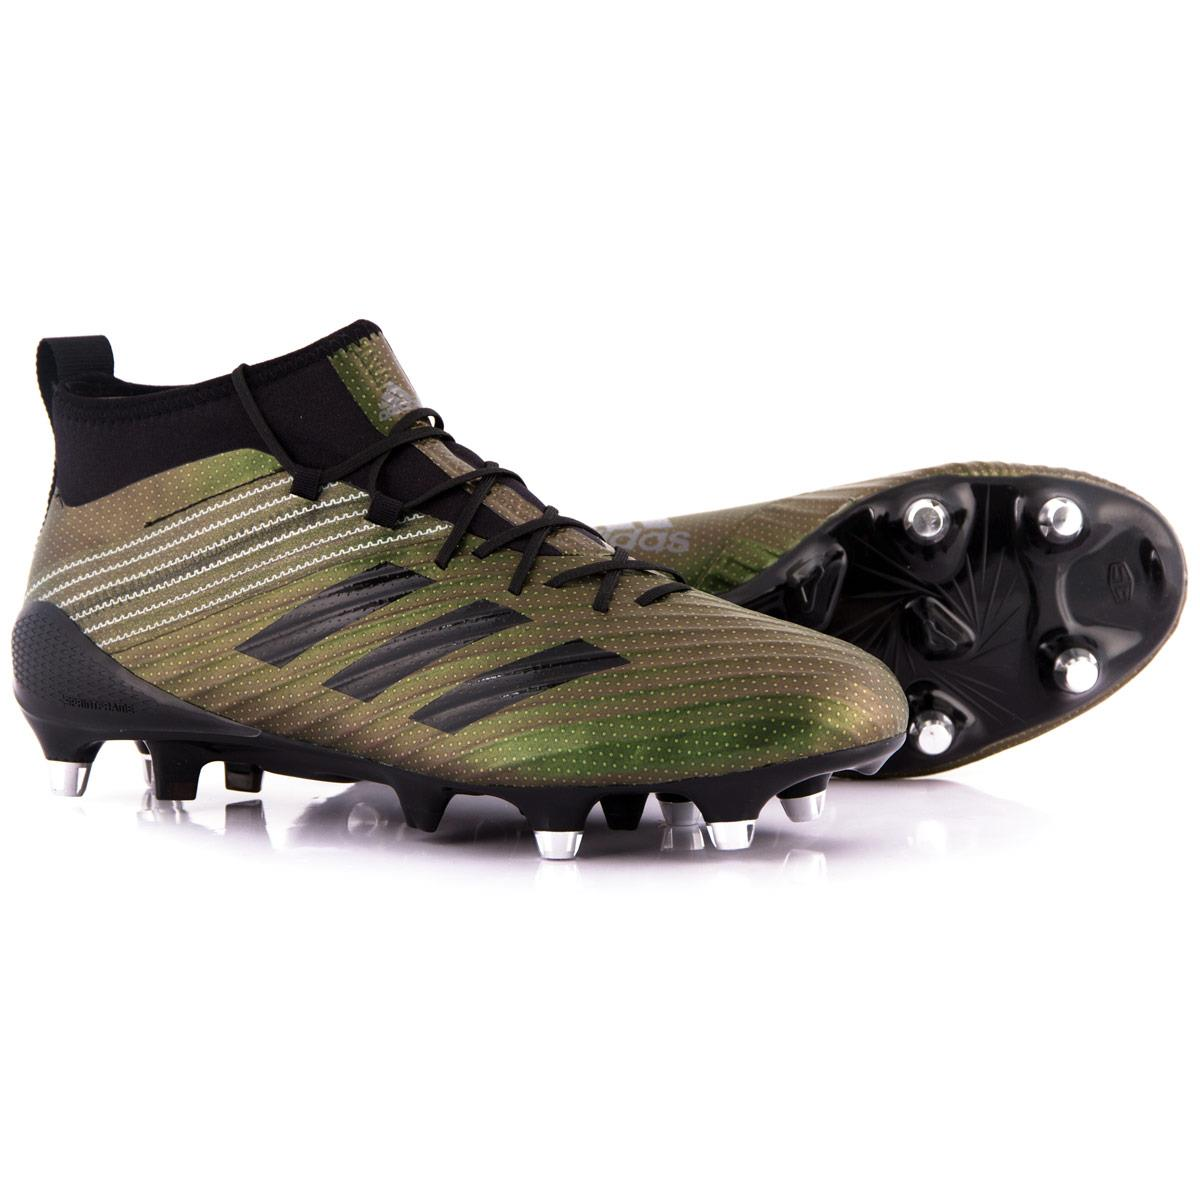 Mens Core Black Adidas Predator Sg Rugby Boots Rugbystore